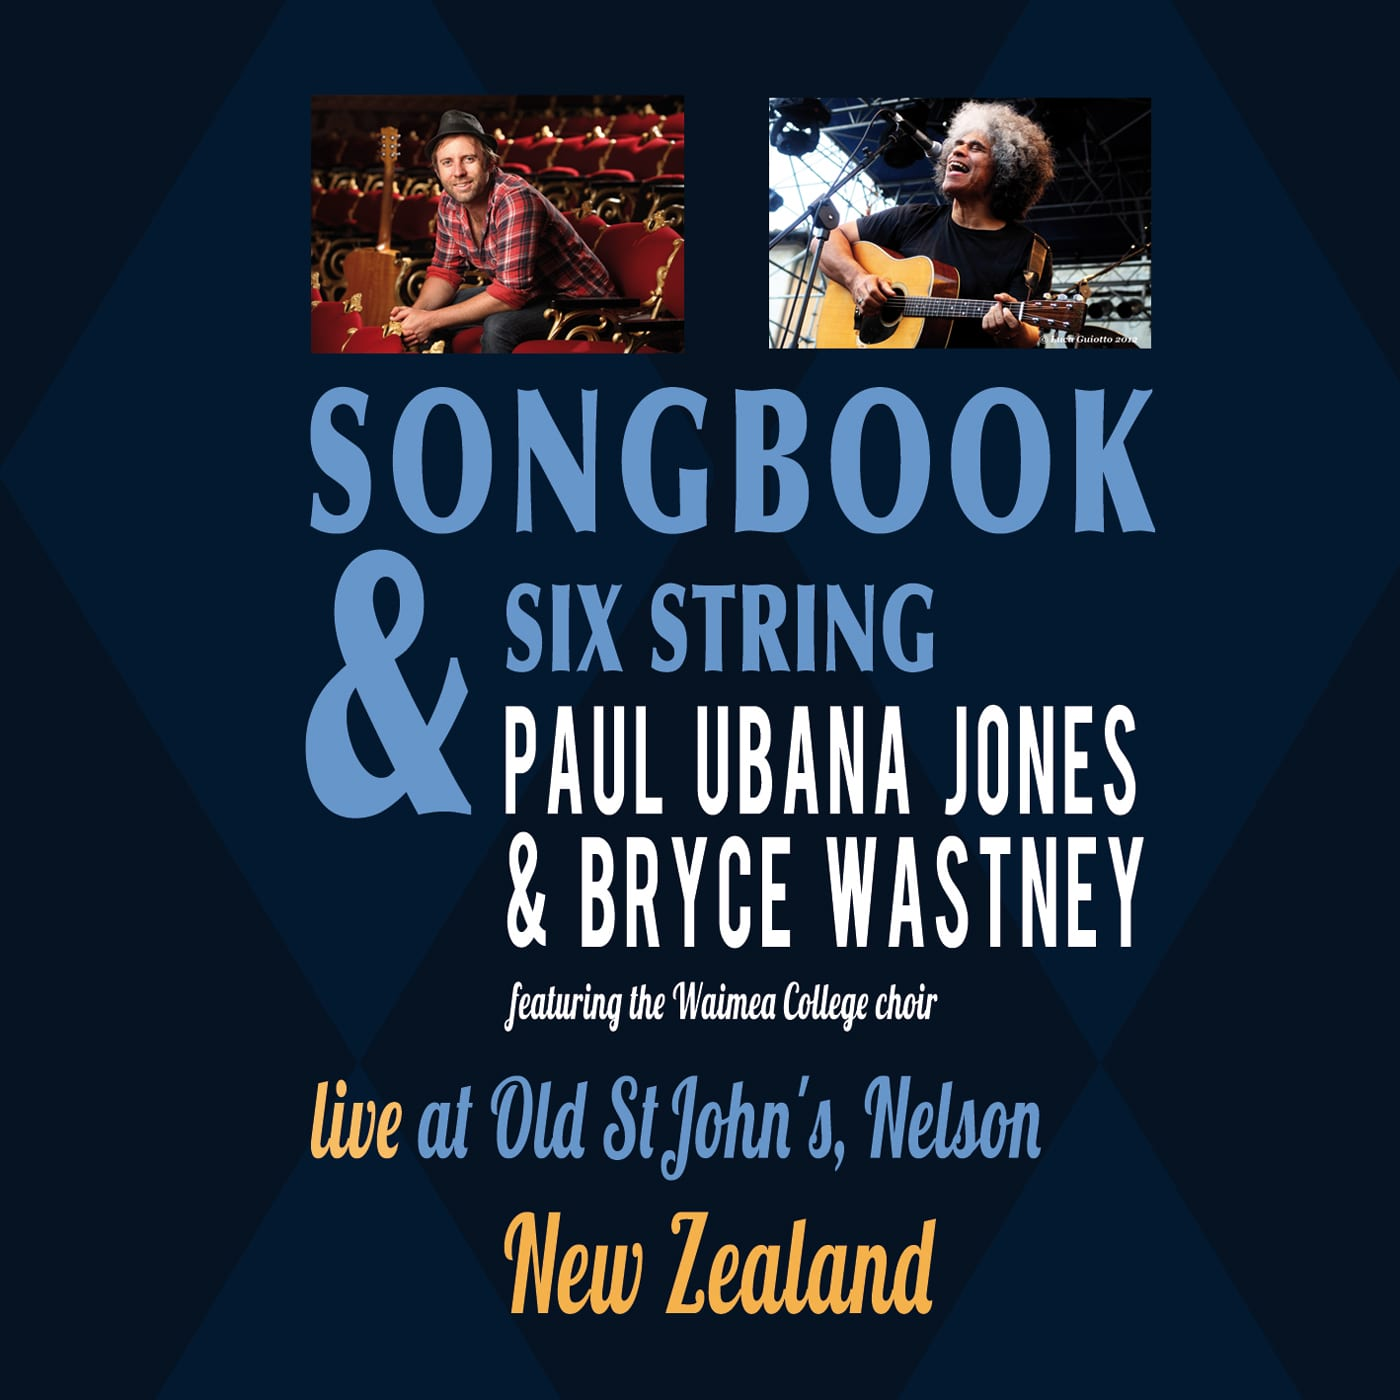 Songbook & Six String (CD + DVD) 2014